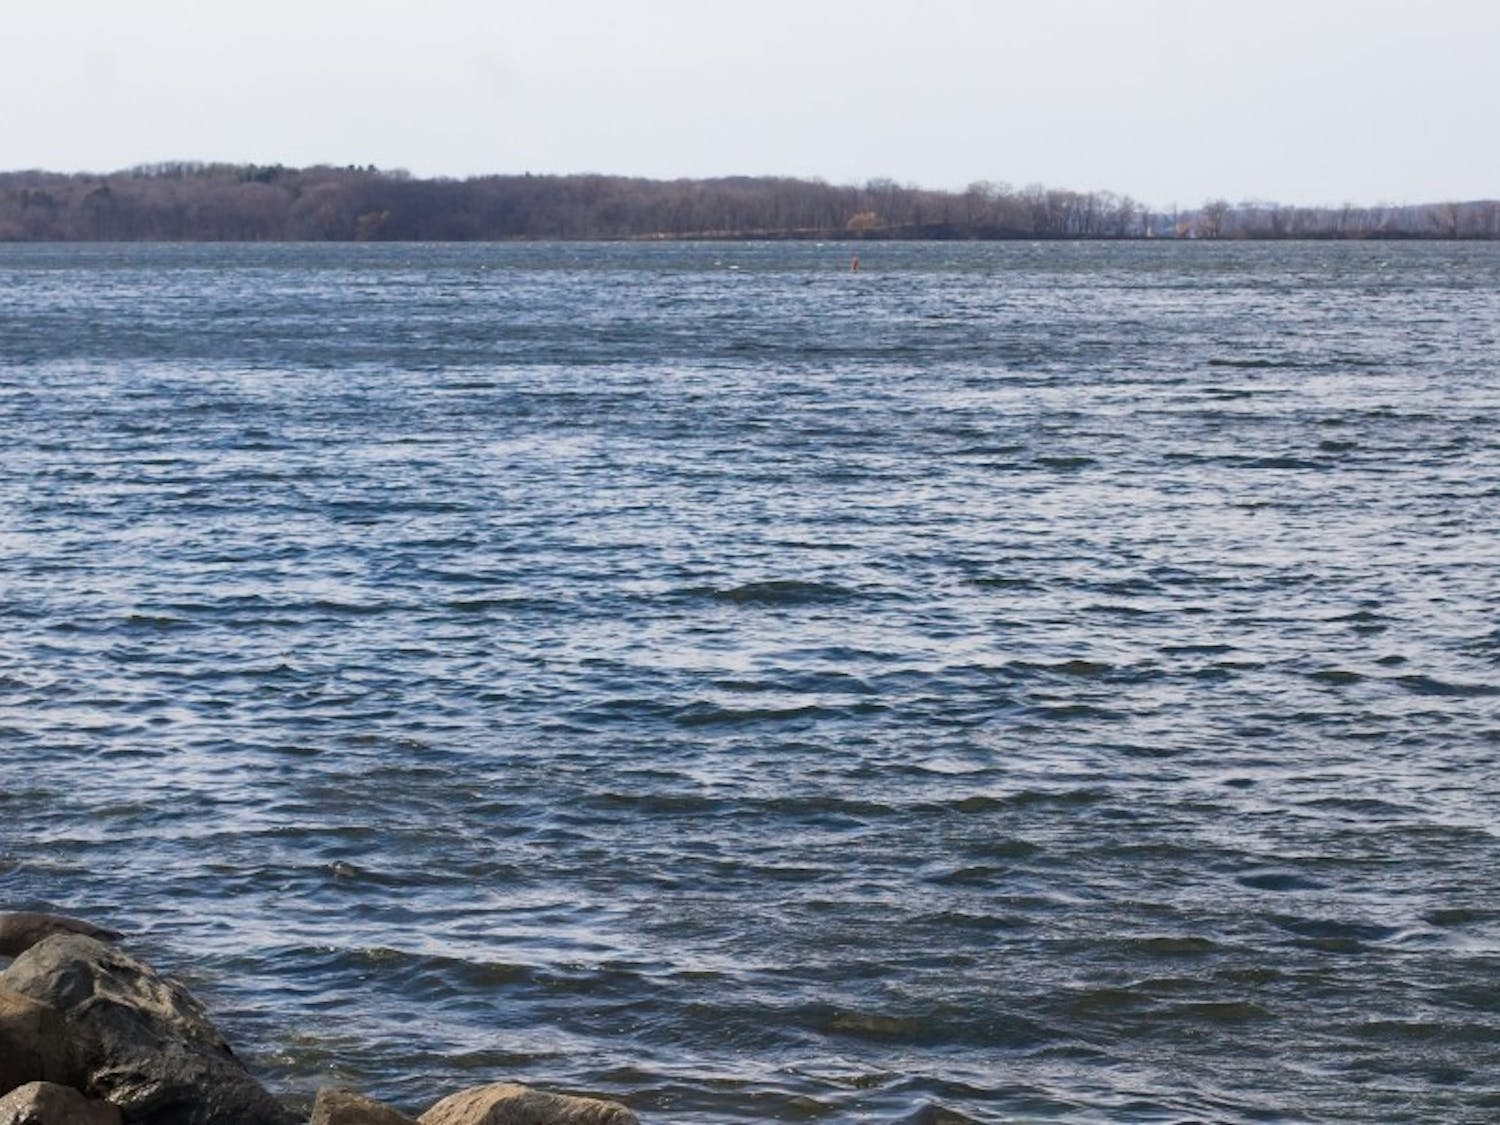 A man in his early 20s was found floating in Lake Mendota still alive with no signs of foul play and has been transported to the hospital.